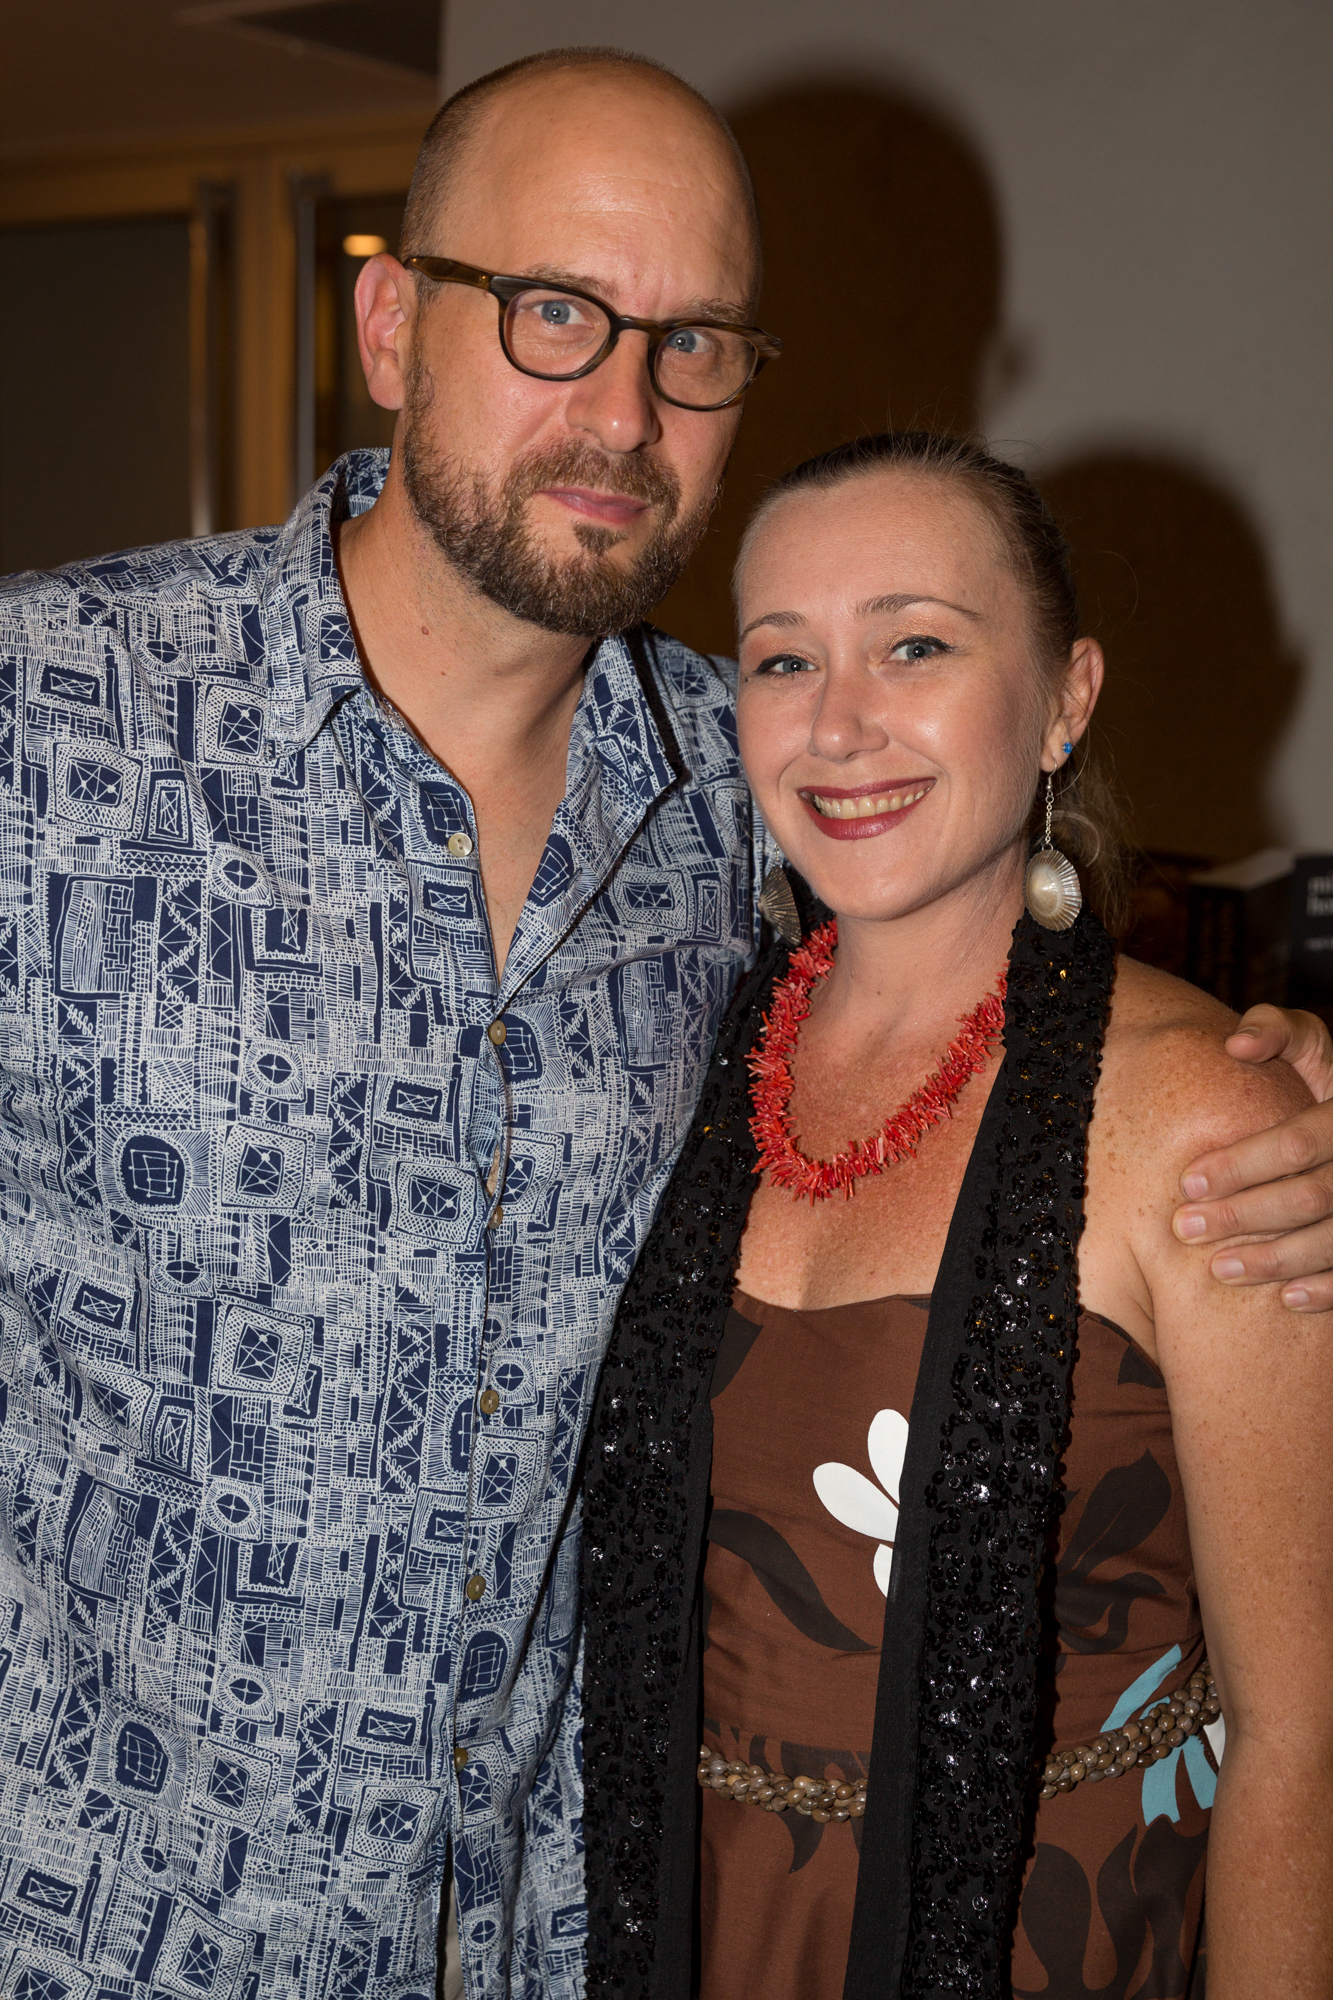 Stefan Schaefer and Lisa Villiarimo at William Finnegan in The Green Room